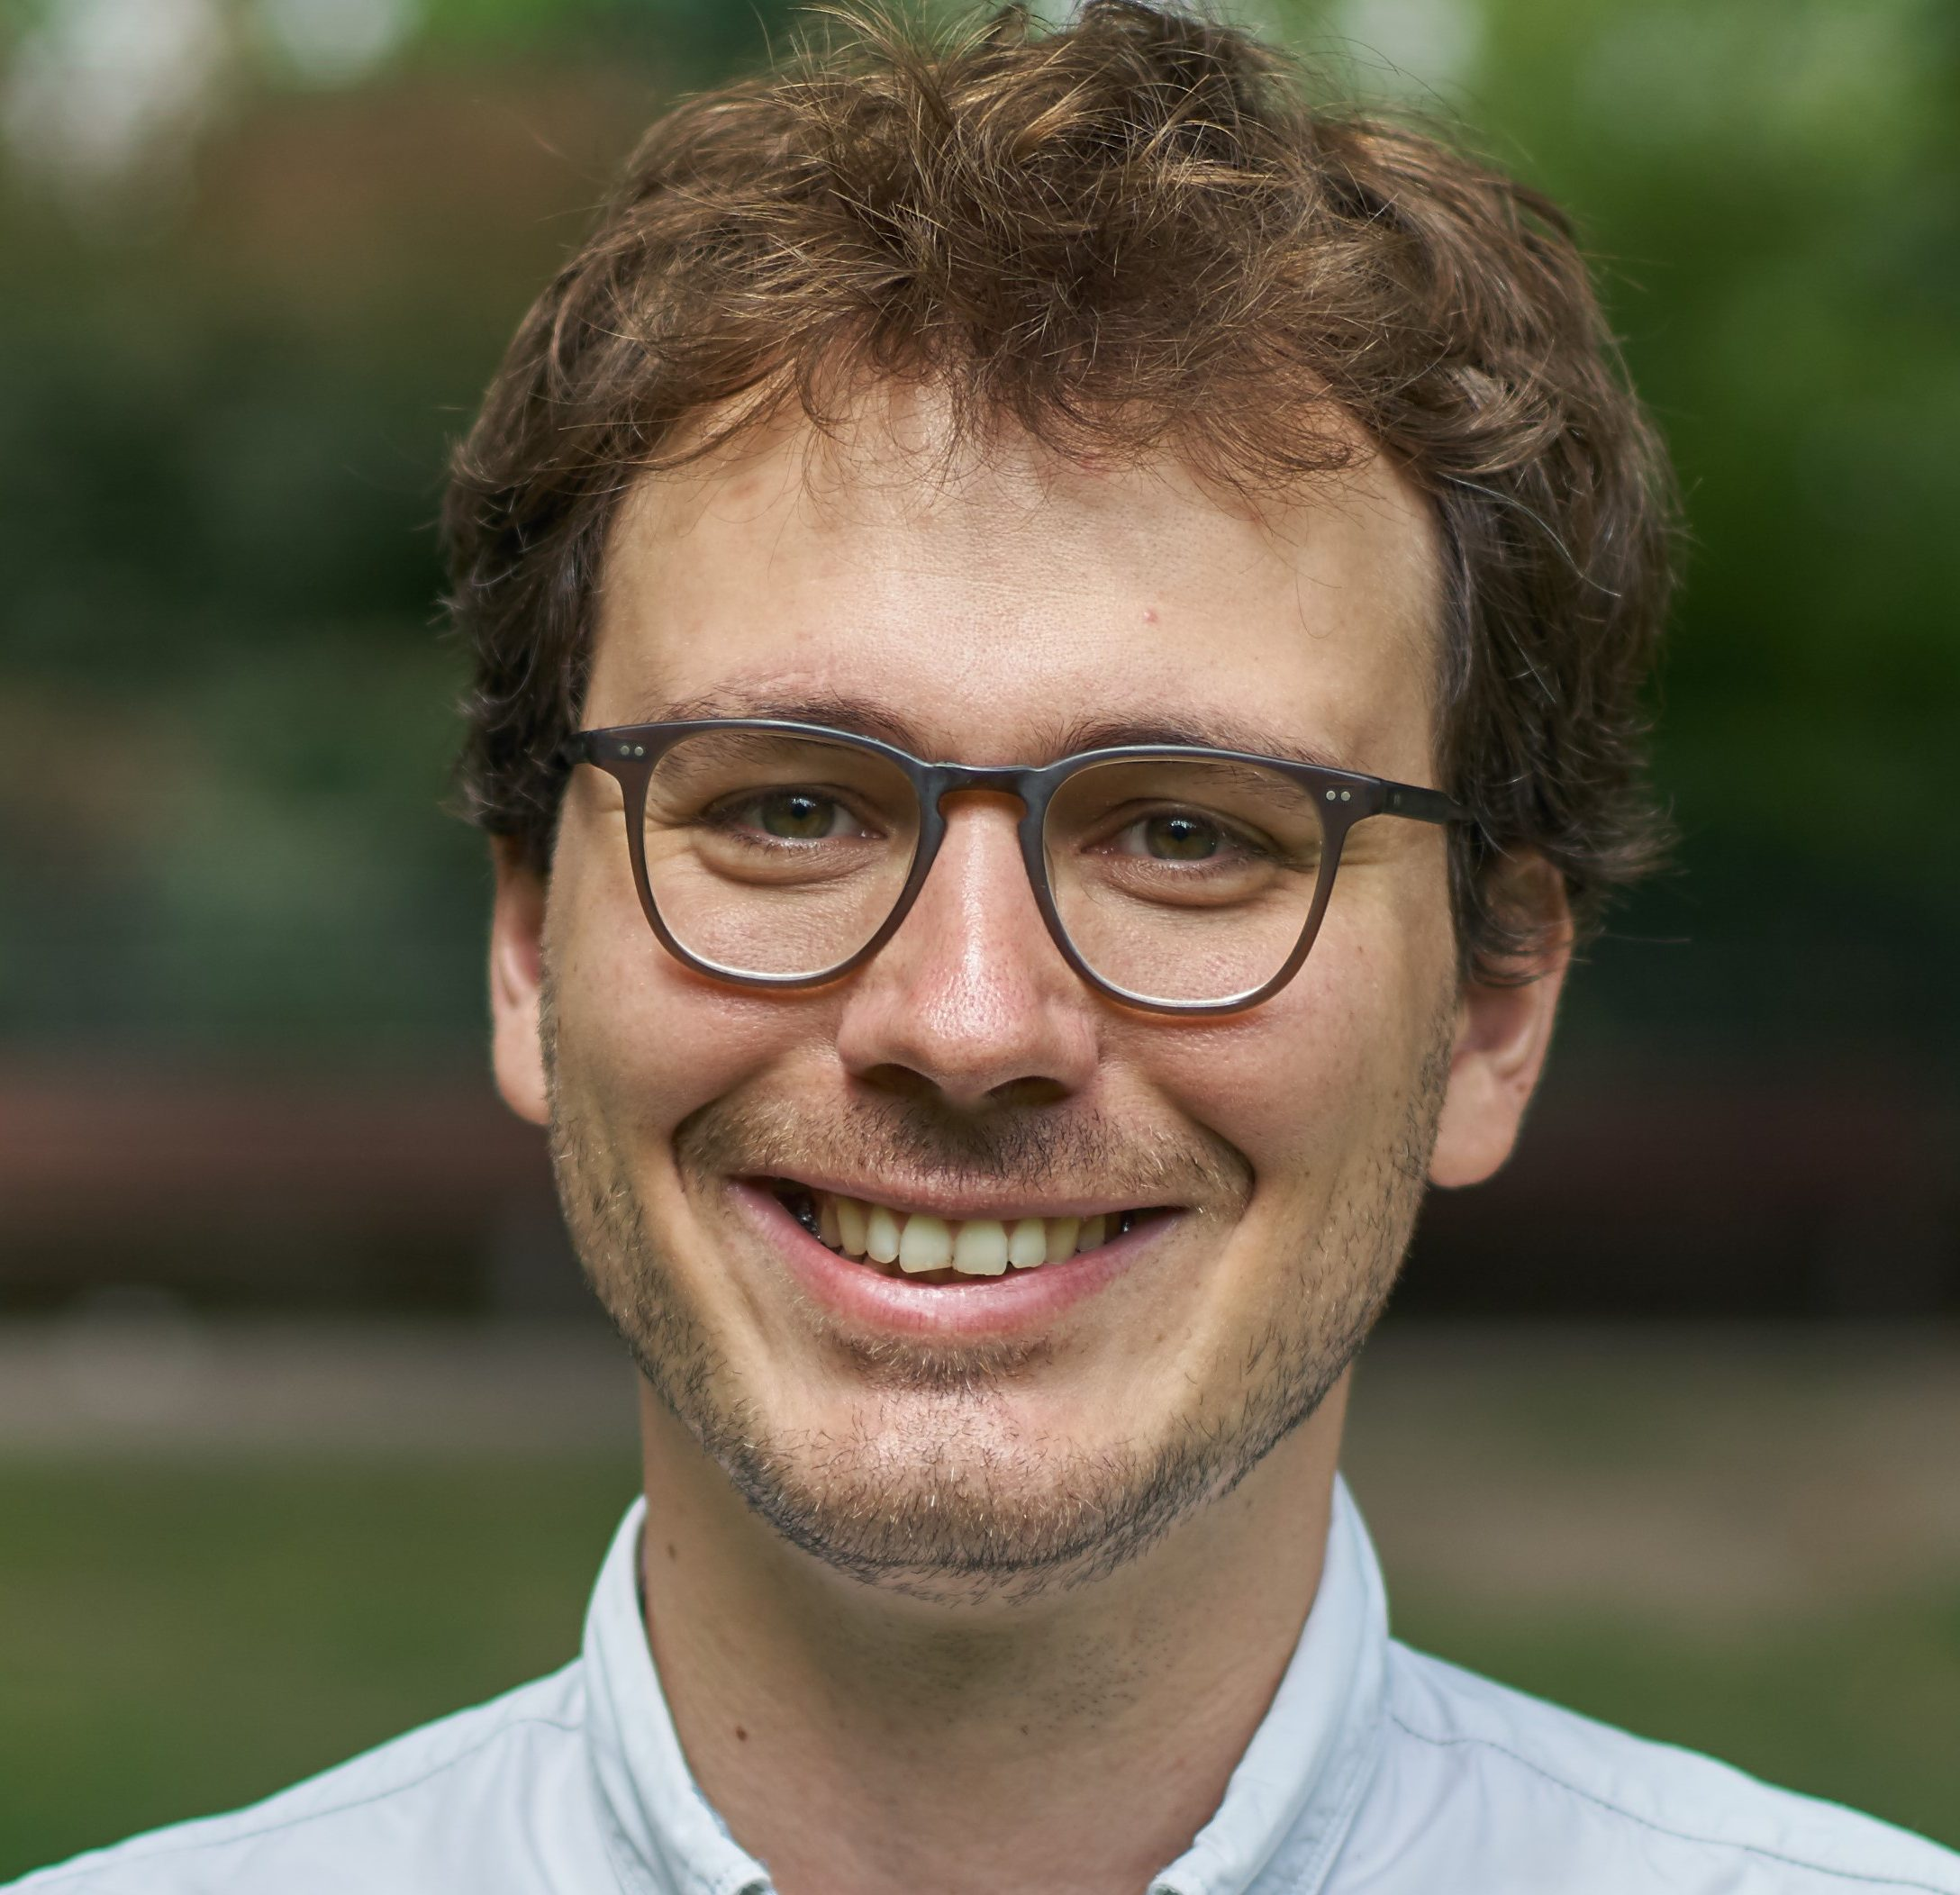 Adrien Bouguen, Phd